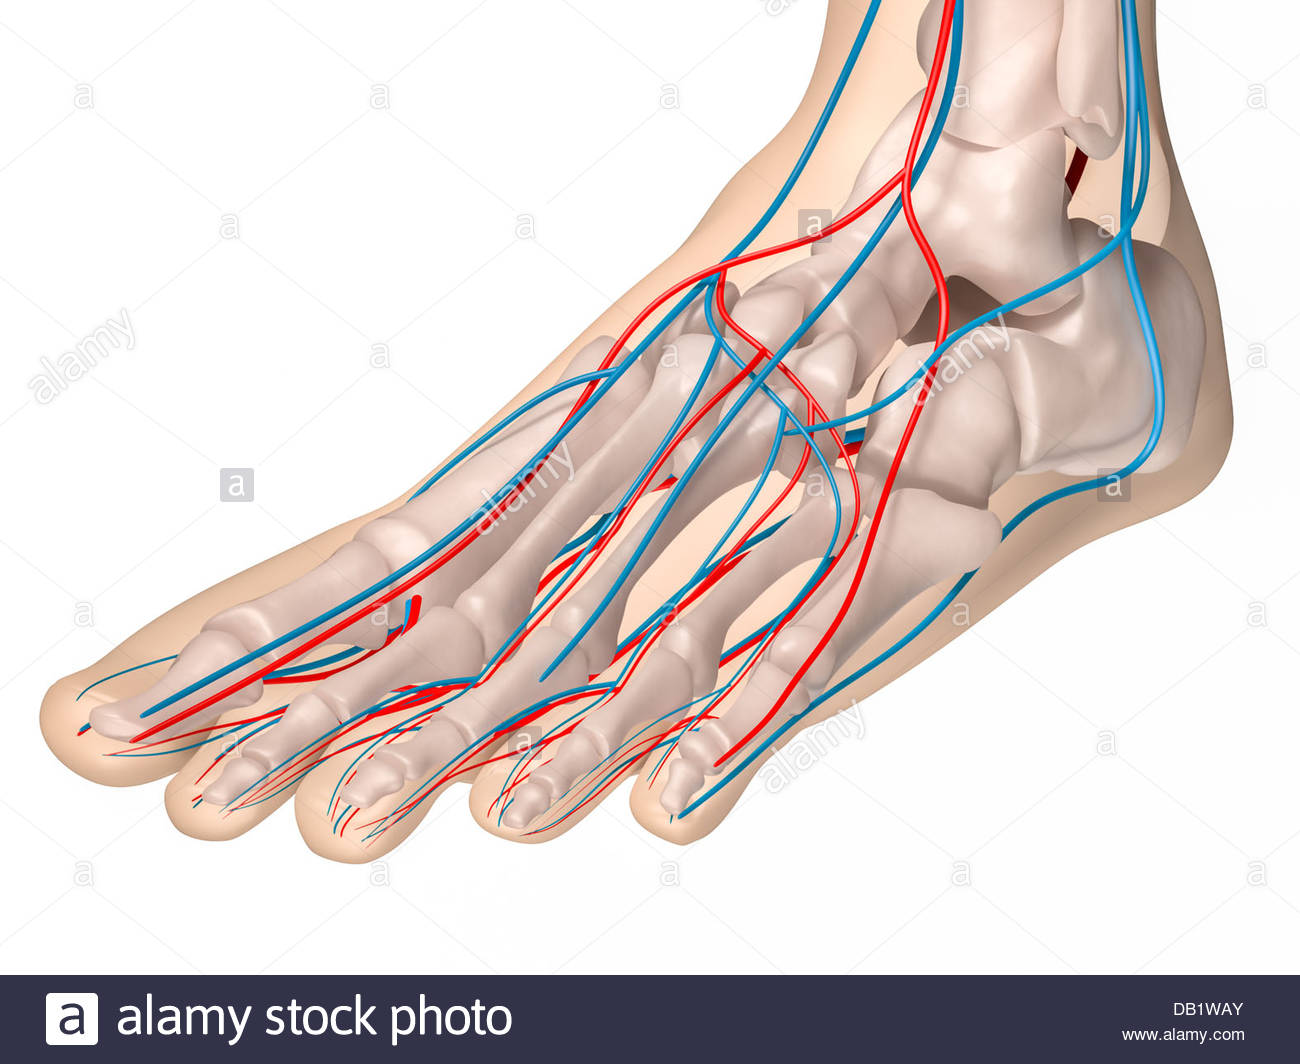 hight resolution of digital medical illustration depicting the front view of the foot featuring the skeleton arteries and